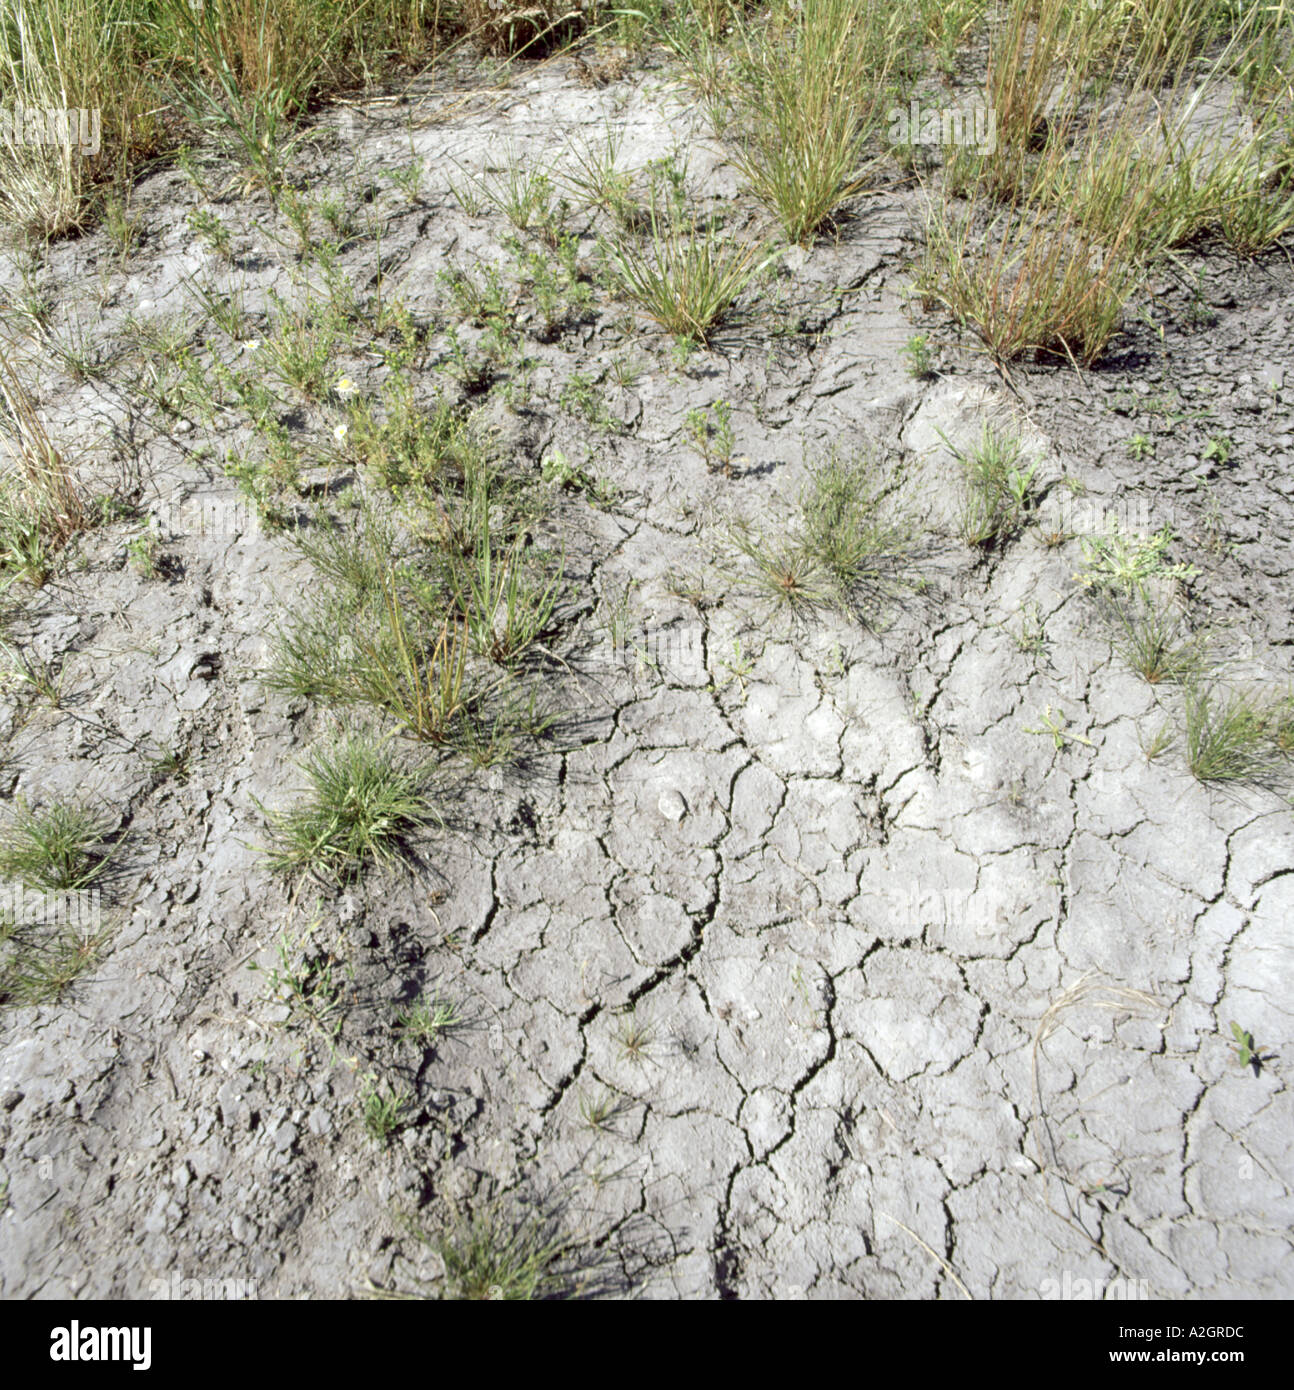 Waterlogged soil dried out and cracked by high summer temperatures during a drought period - Stock Image